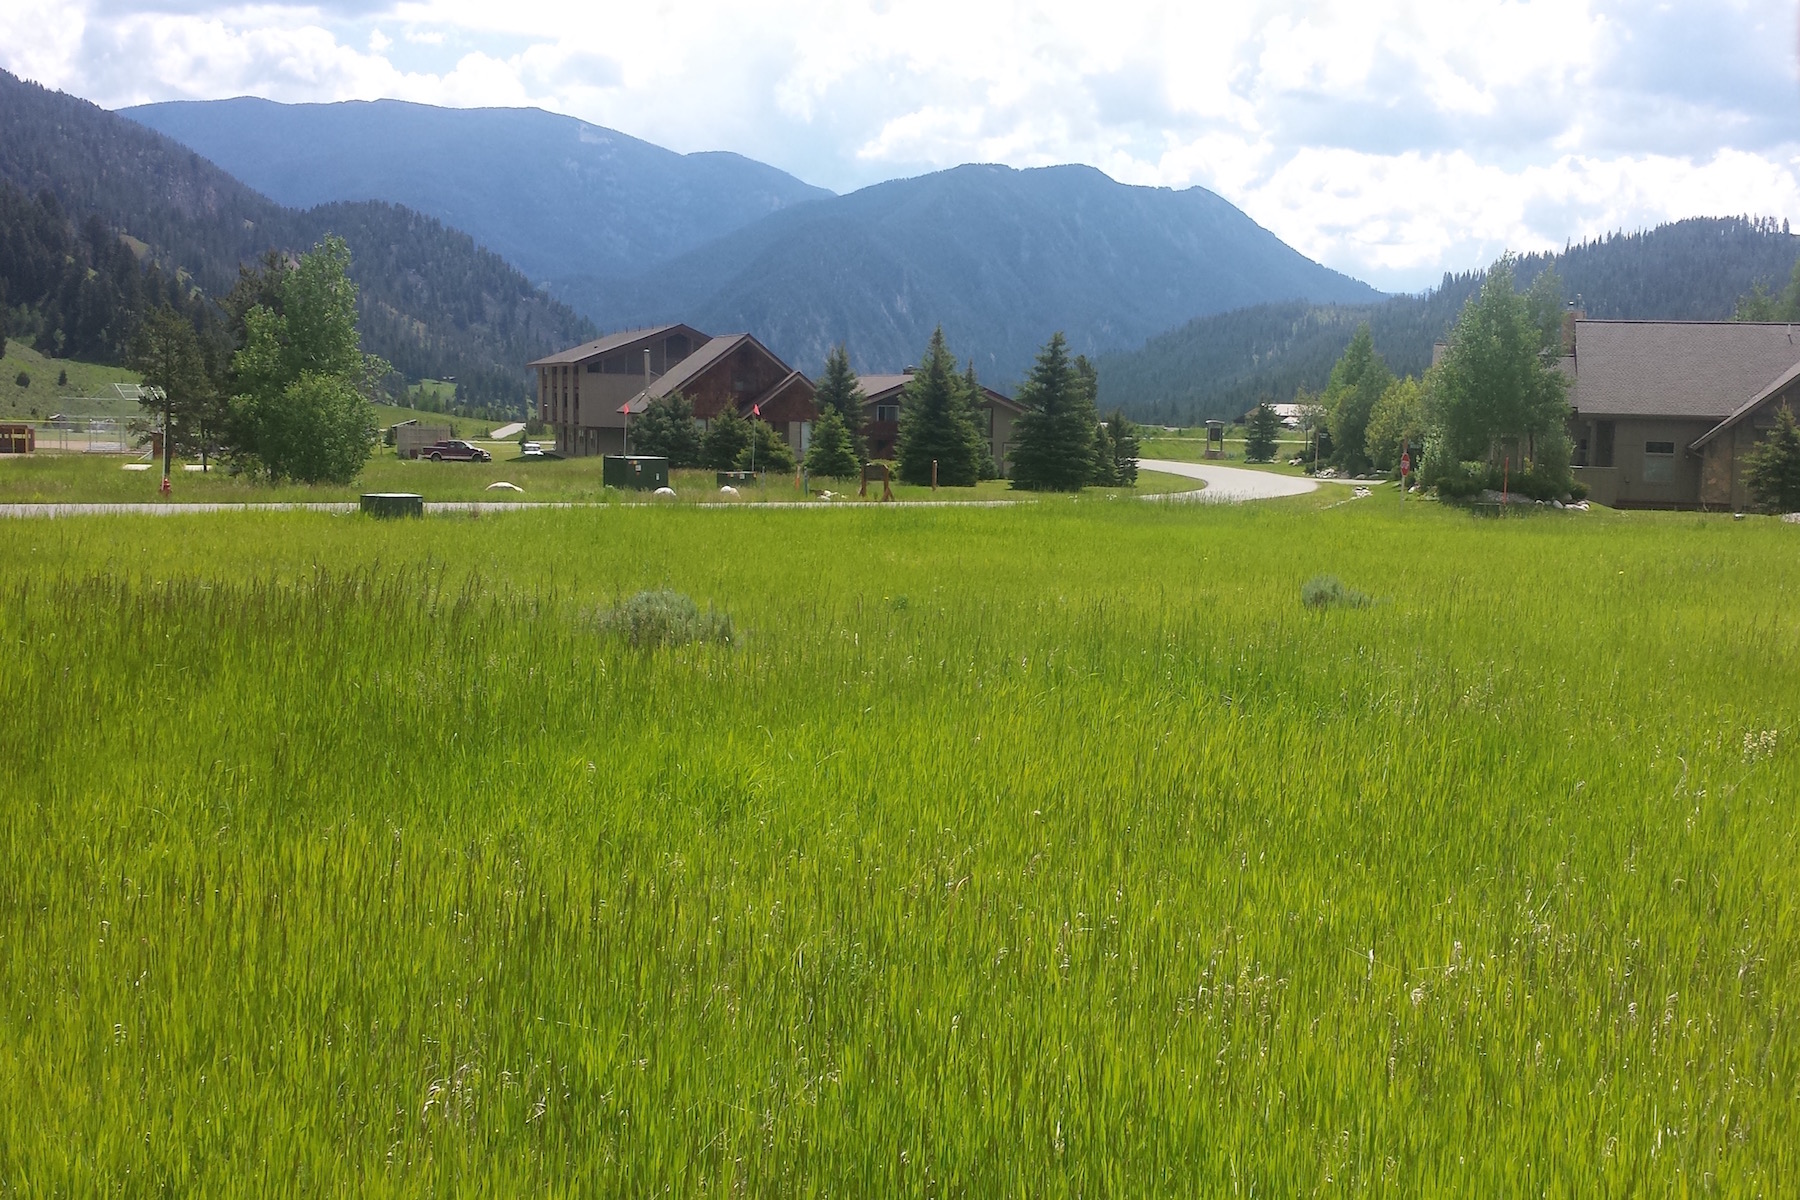 Land for Sale at Unique meadow property Little Coyote Road, Lot 32 Big Sky, Montana, 59716 United States